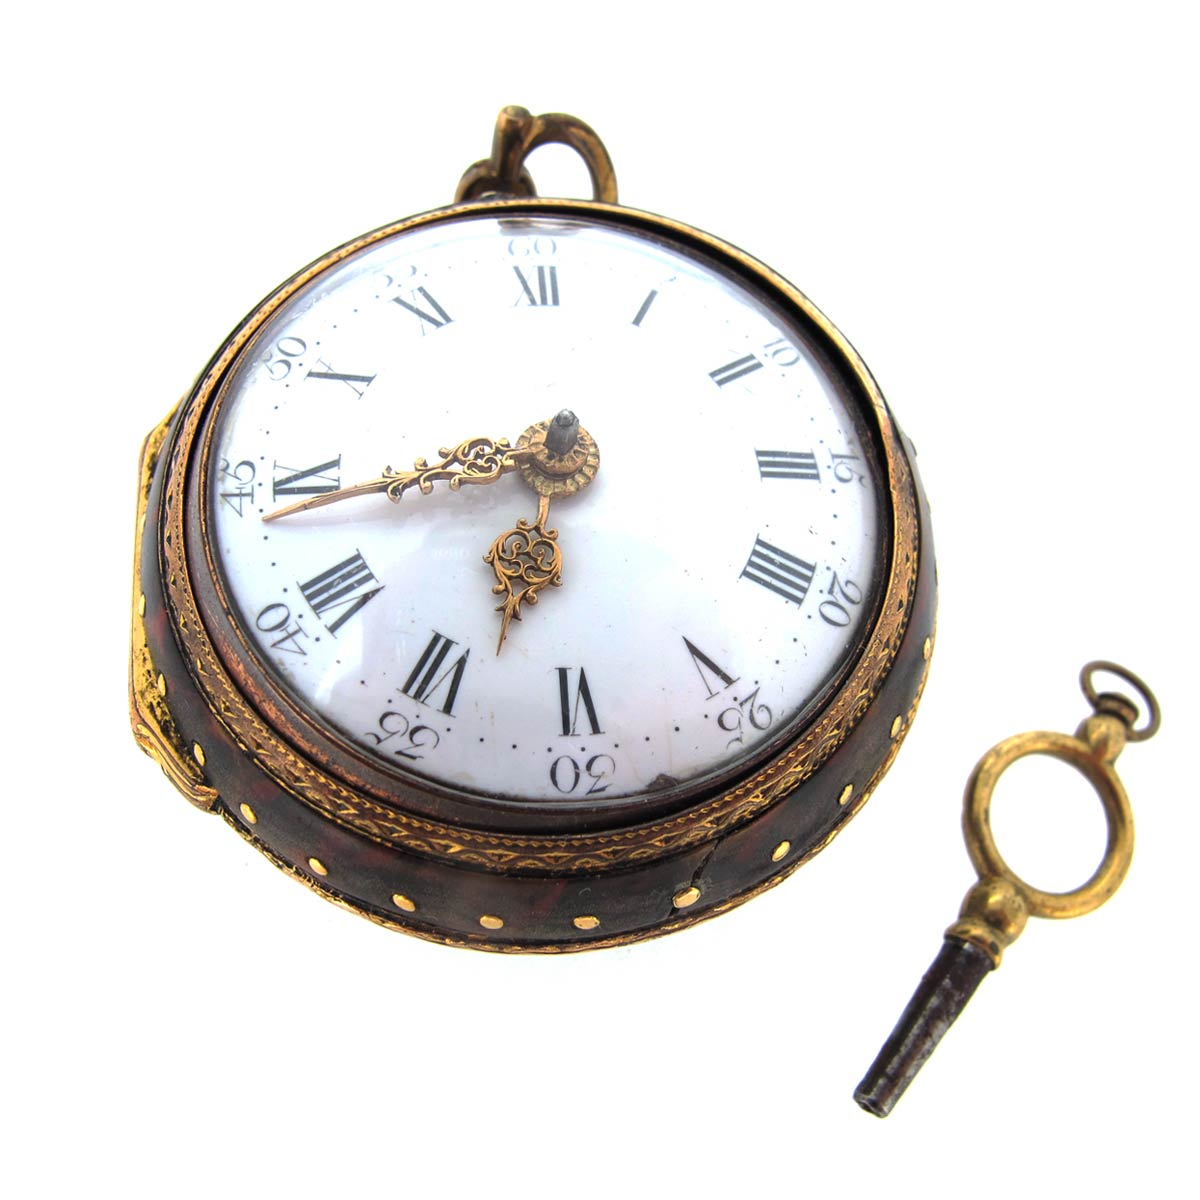 Antique Pocket Watch in Enamel Case